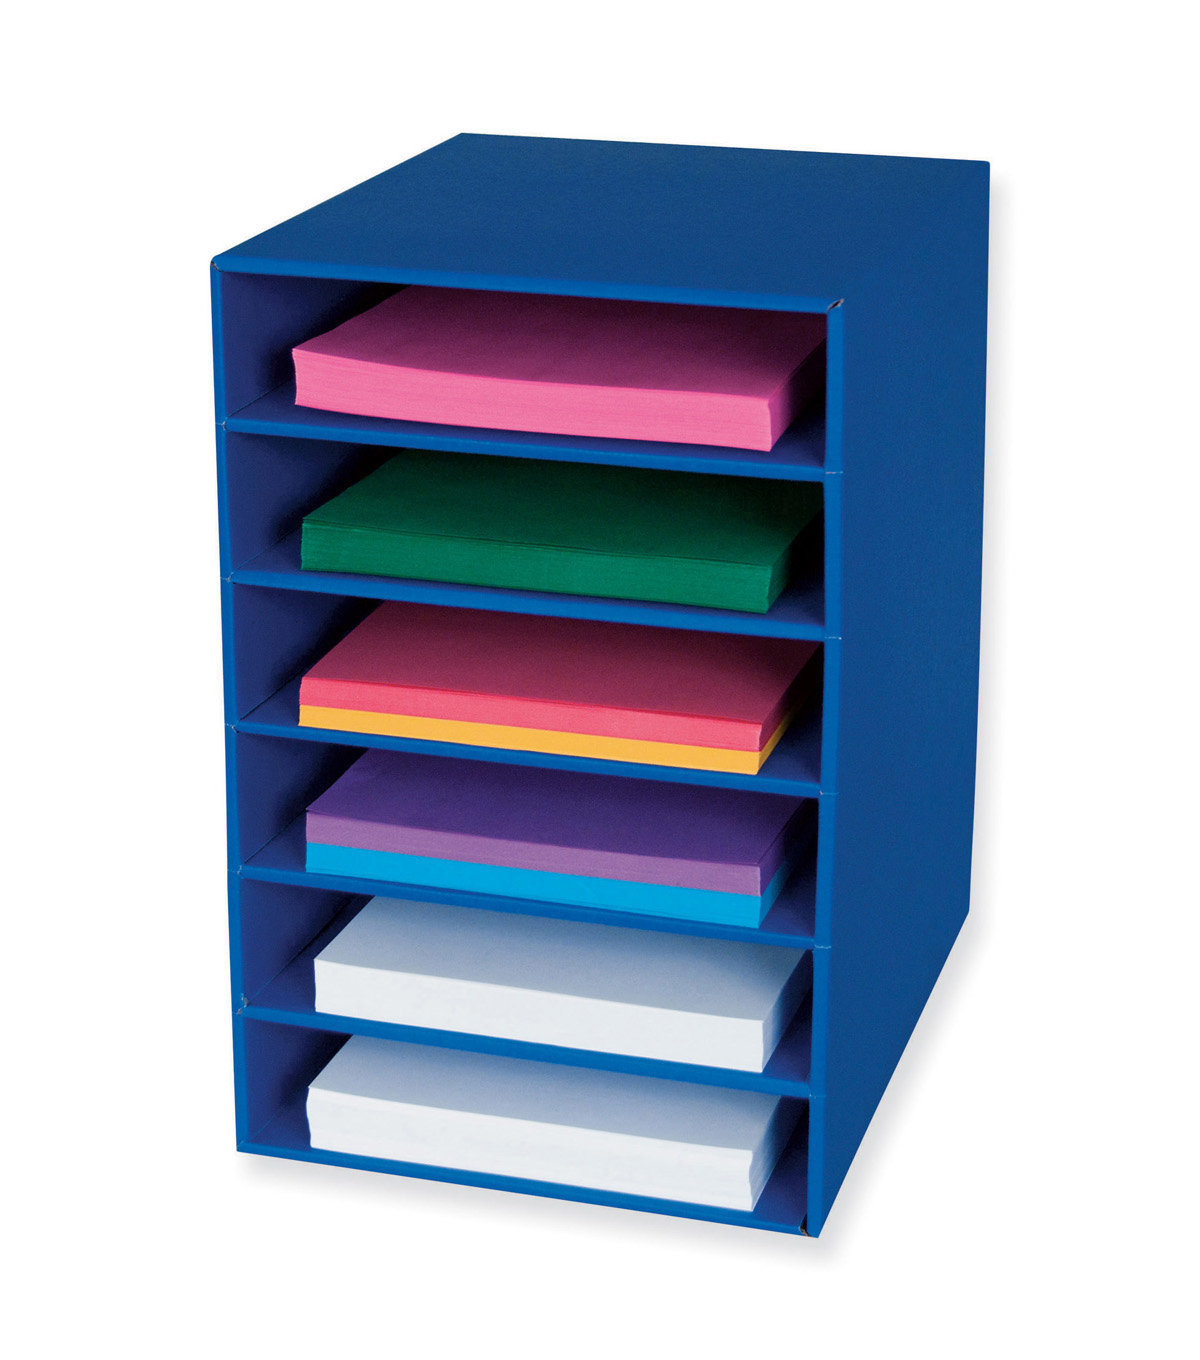 Classroom Keepers 6-Shelf Organizer, Blue, 17-3/4\u0022H x 12\u0022W x 13-1/2\u0022D